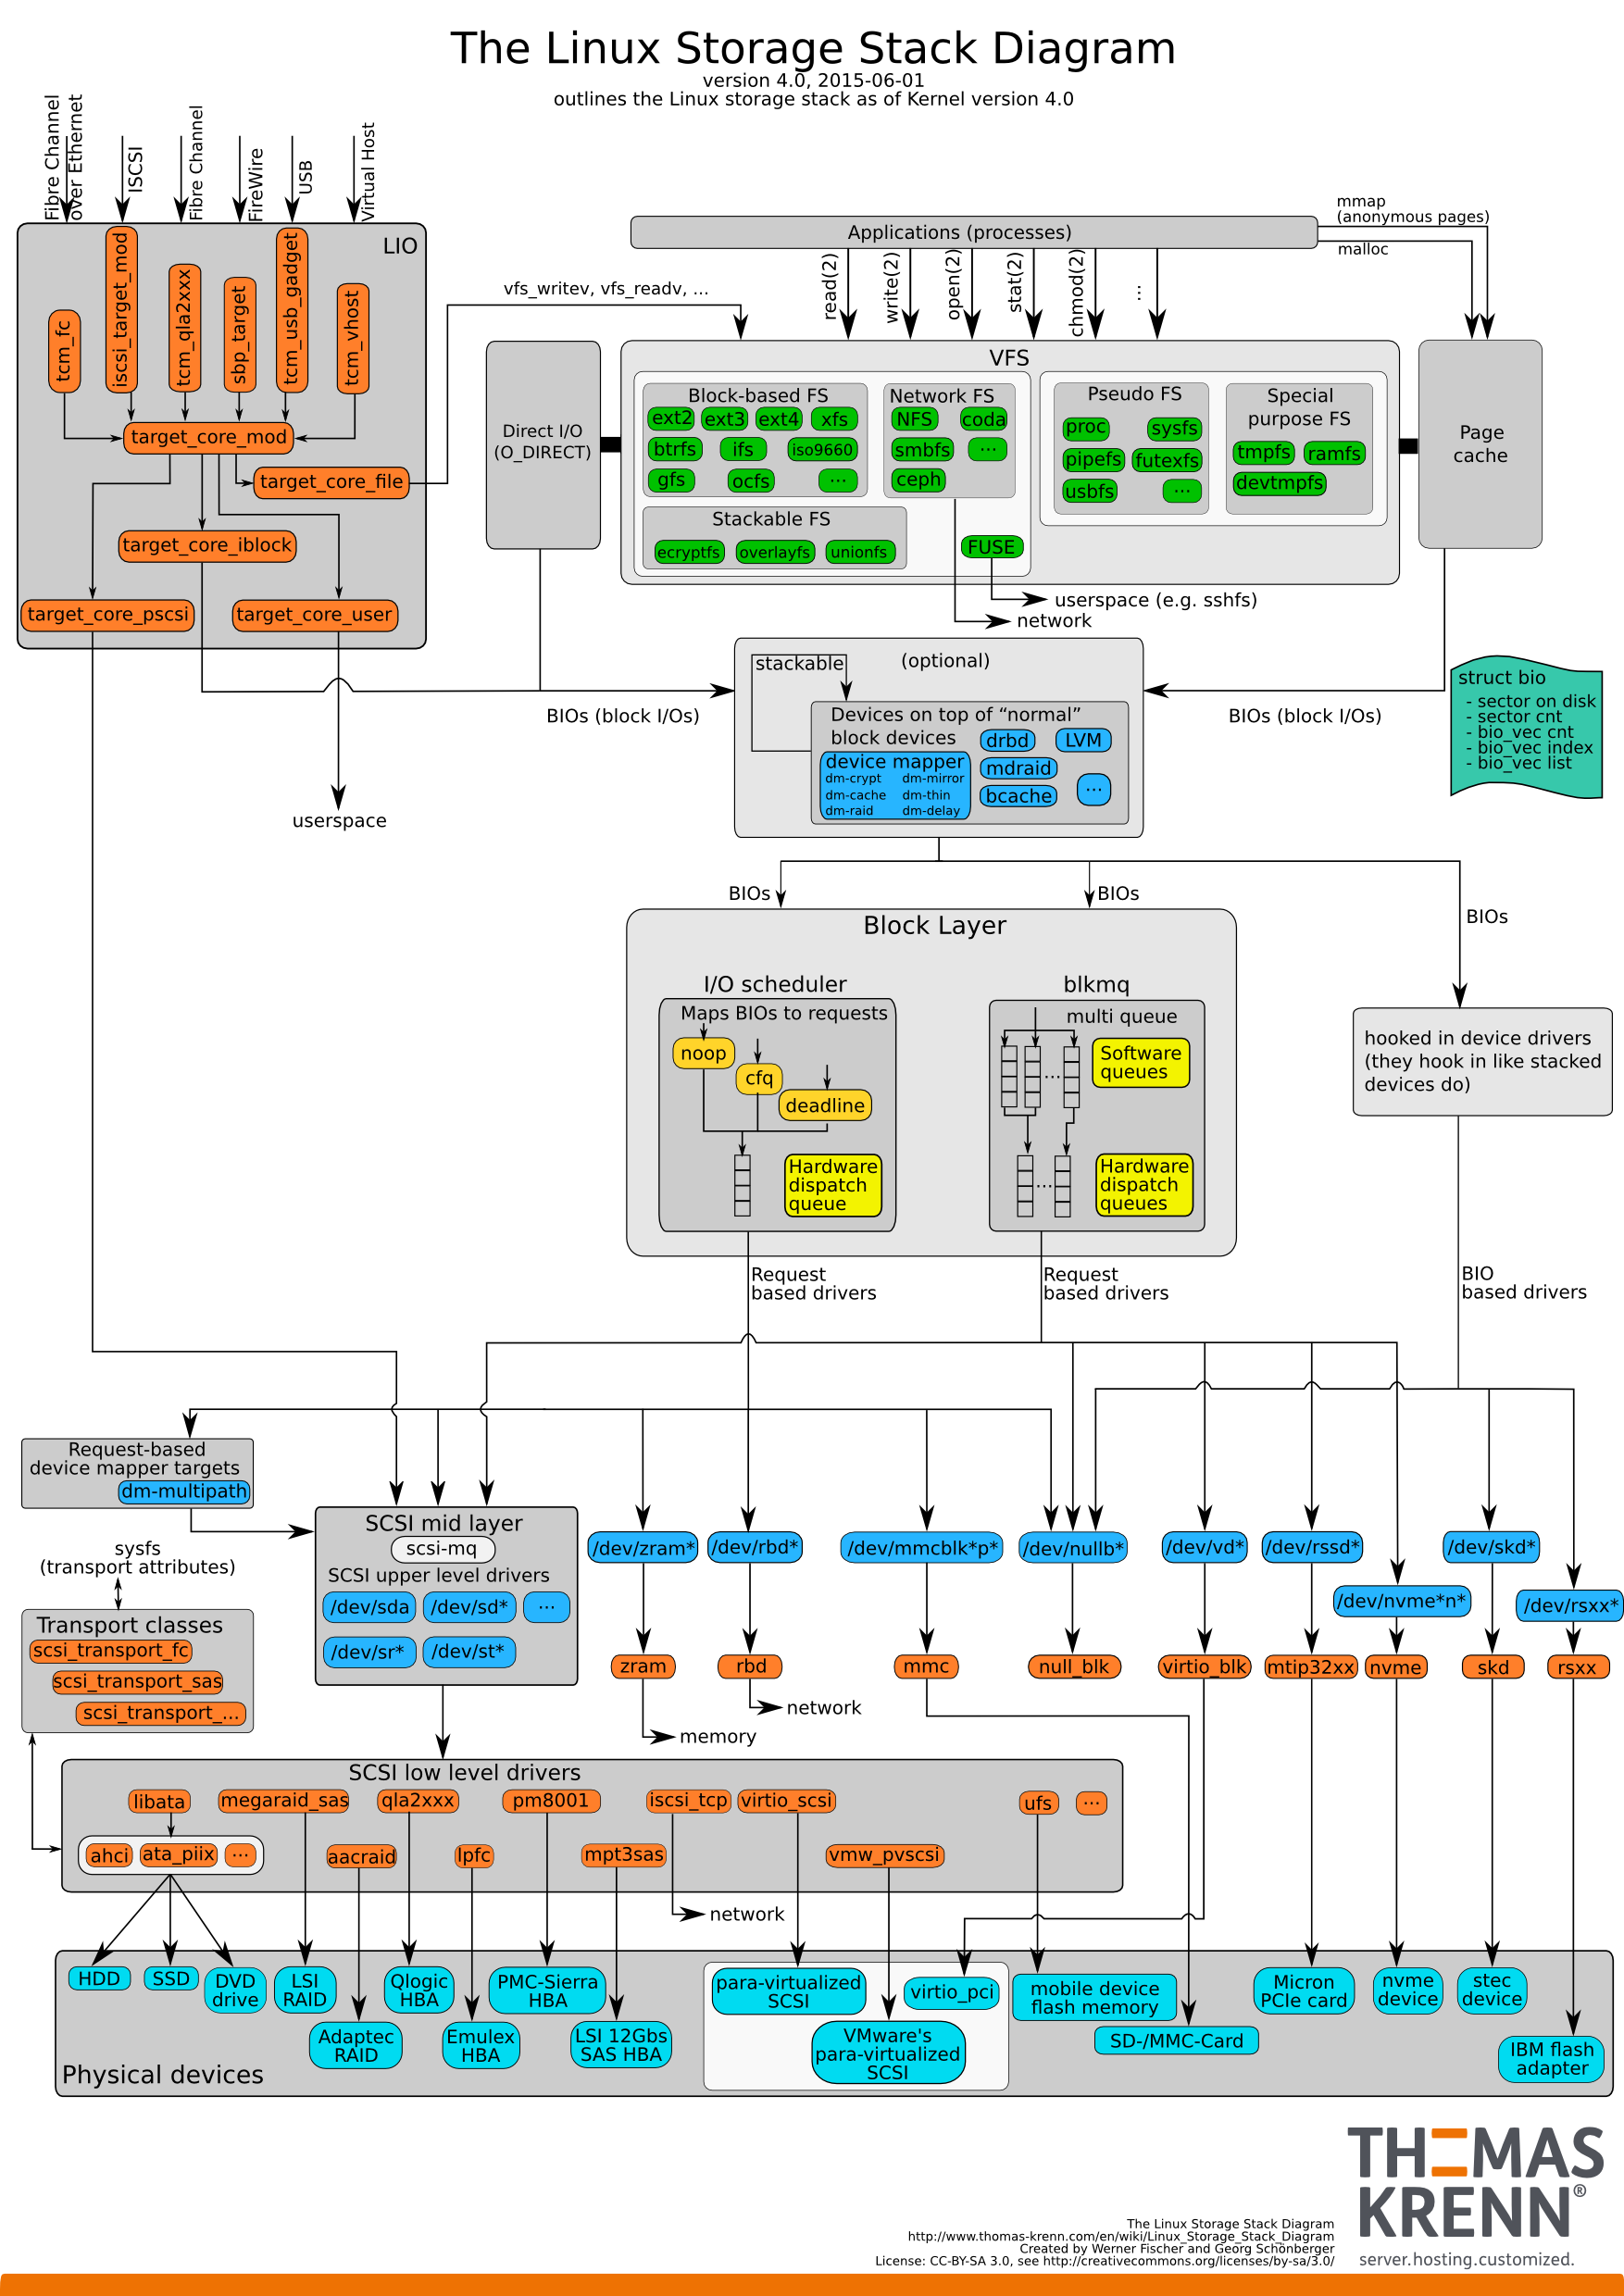 Linux-storage-stack-diagram_v4.0